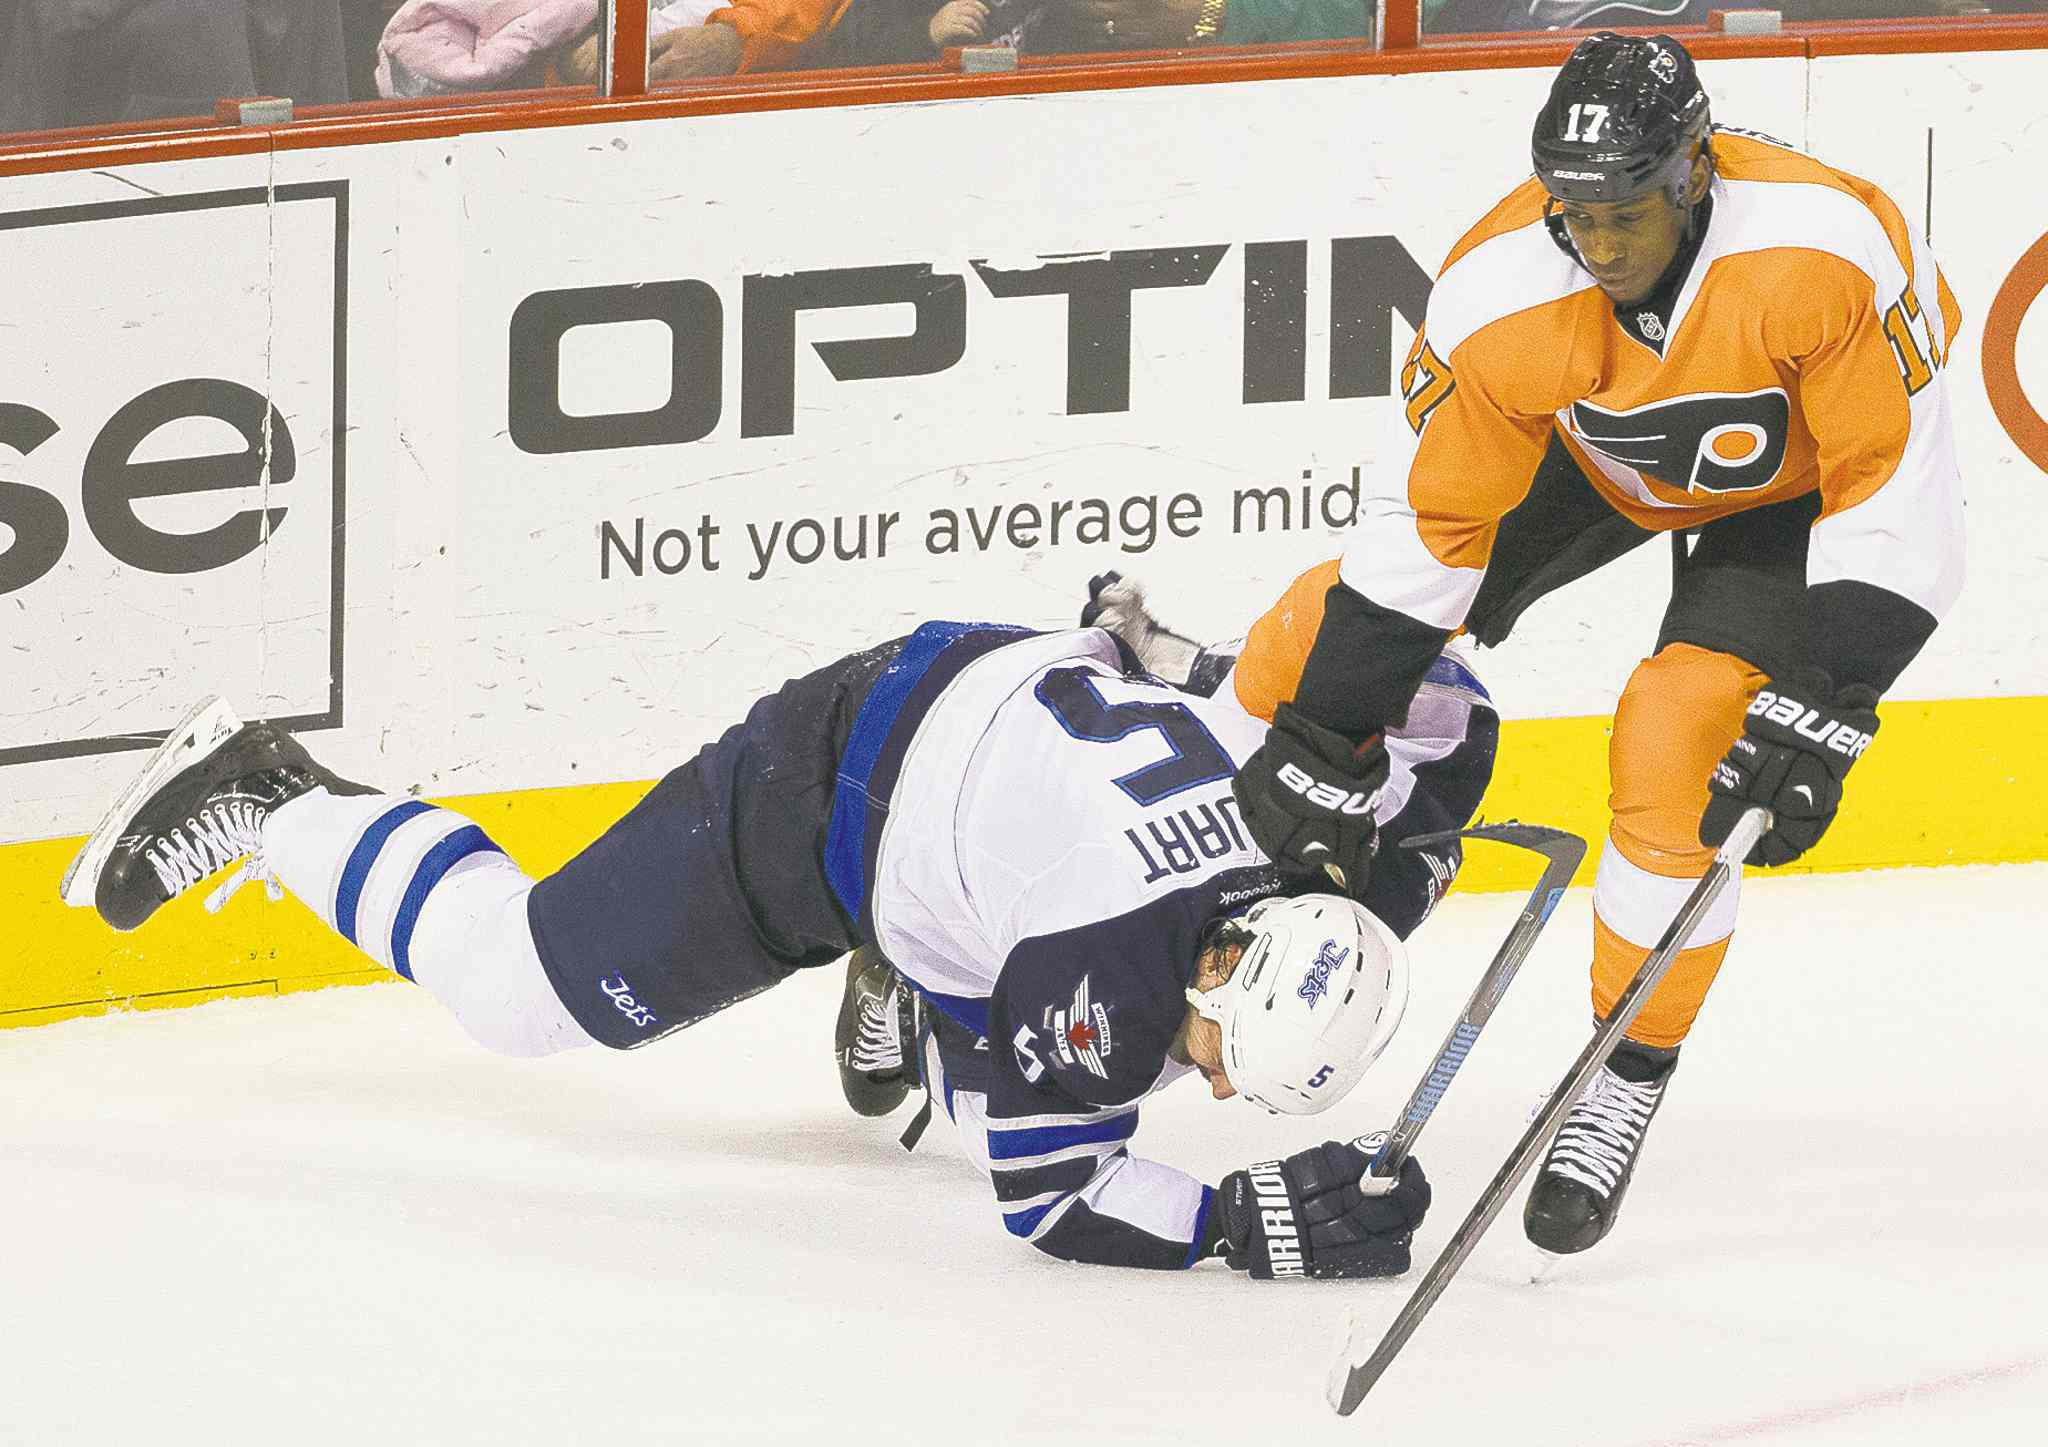 Jets defenceman Mark Stuart goes down after getting tangled up with Flyers forward Wayne Simmonds in the third period Friday.